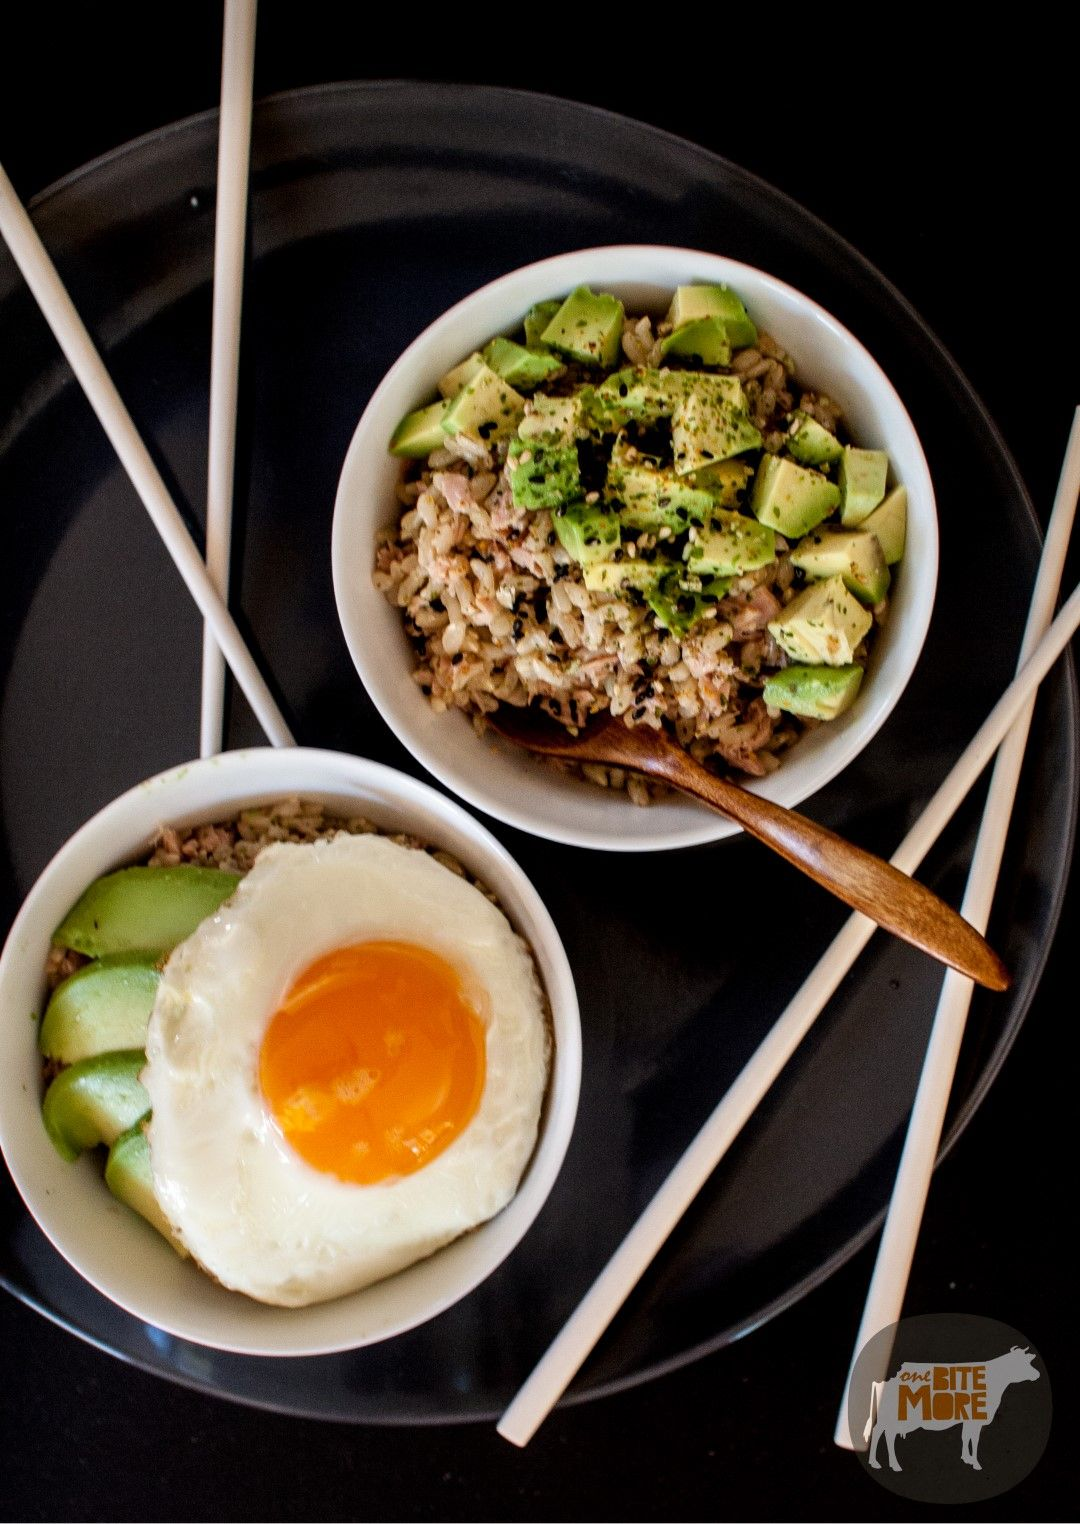 Tuna Avocado Egg Rice Bowl Brown rice, soy sauce, sesame oil, tuna, rice vinegar, eggs, avocado